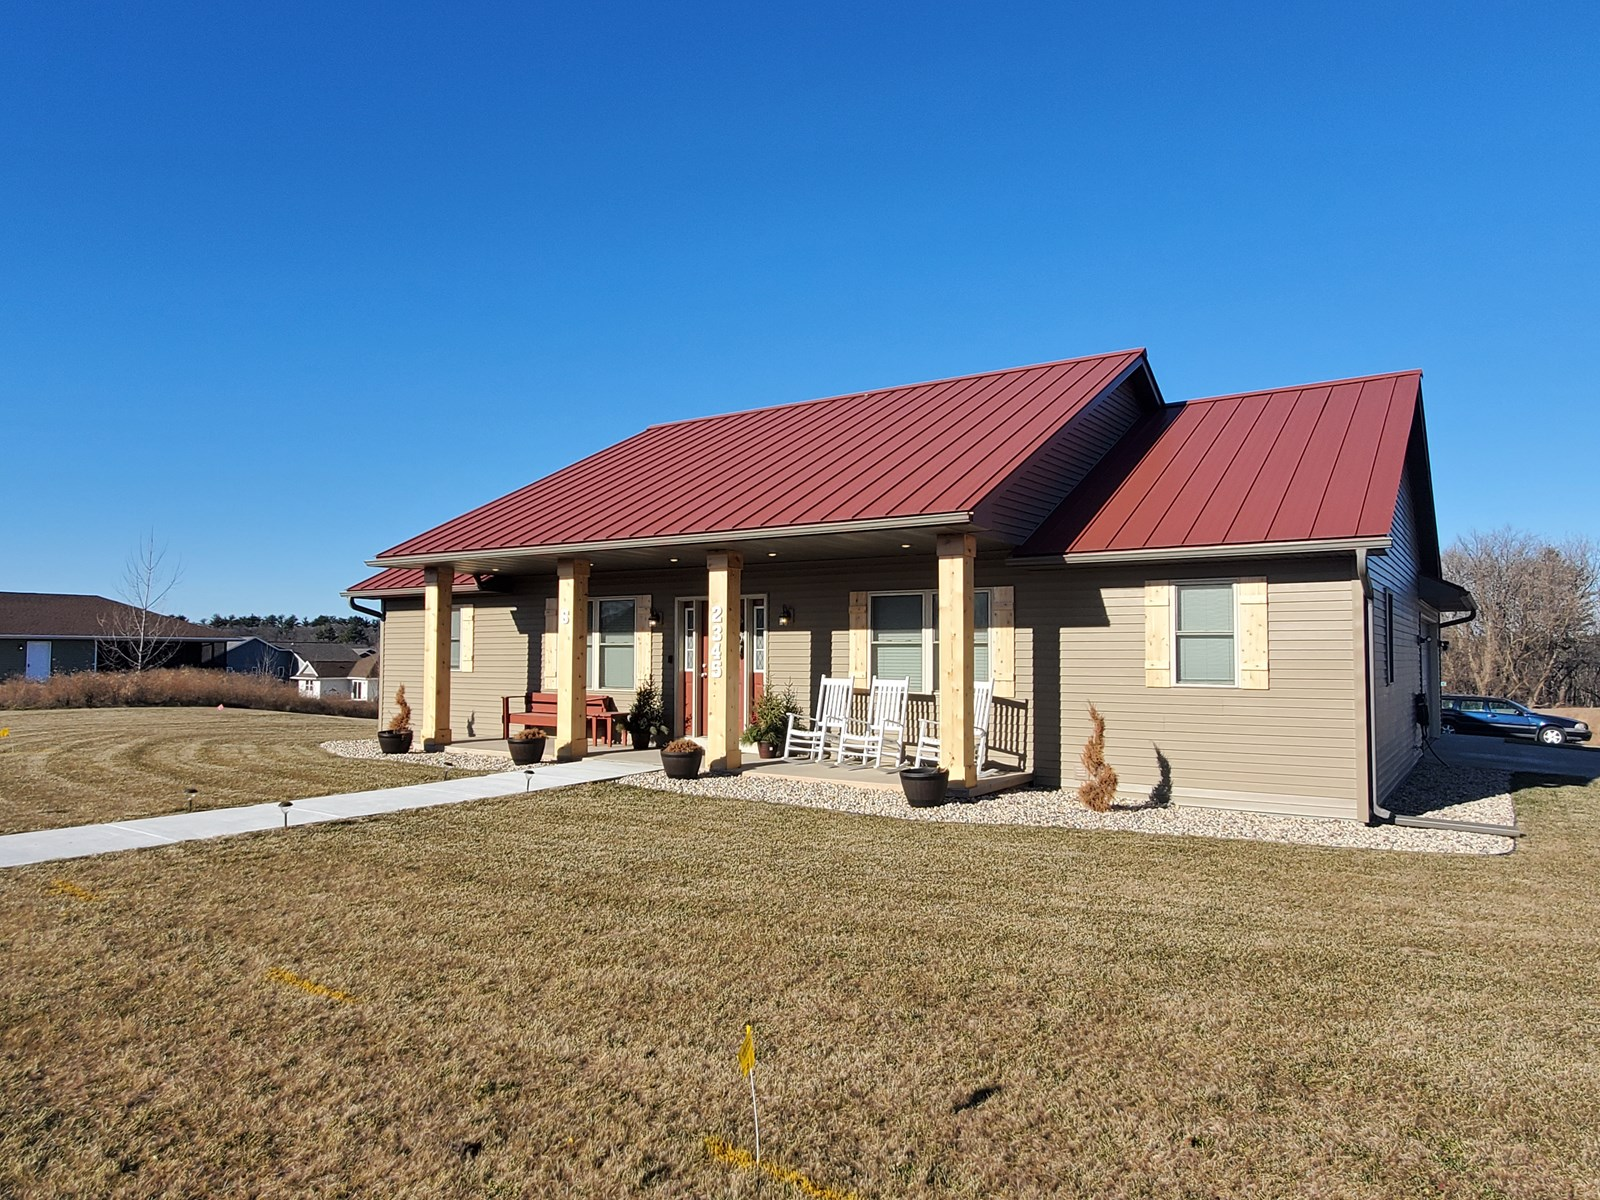 Ranch Home For Sale in Waupaca County